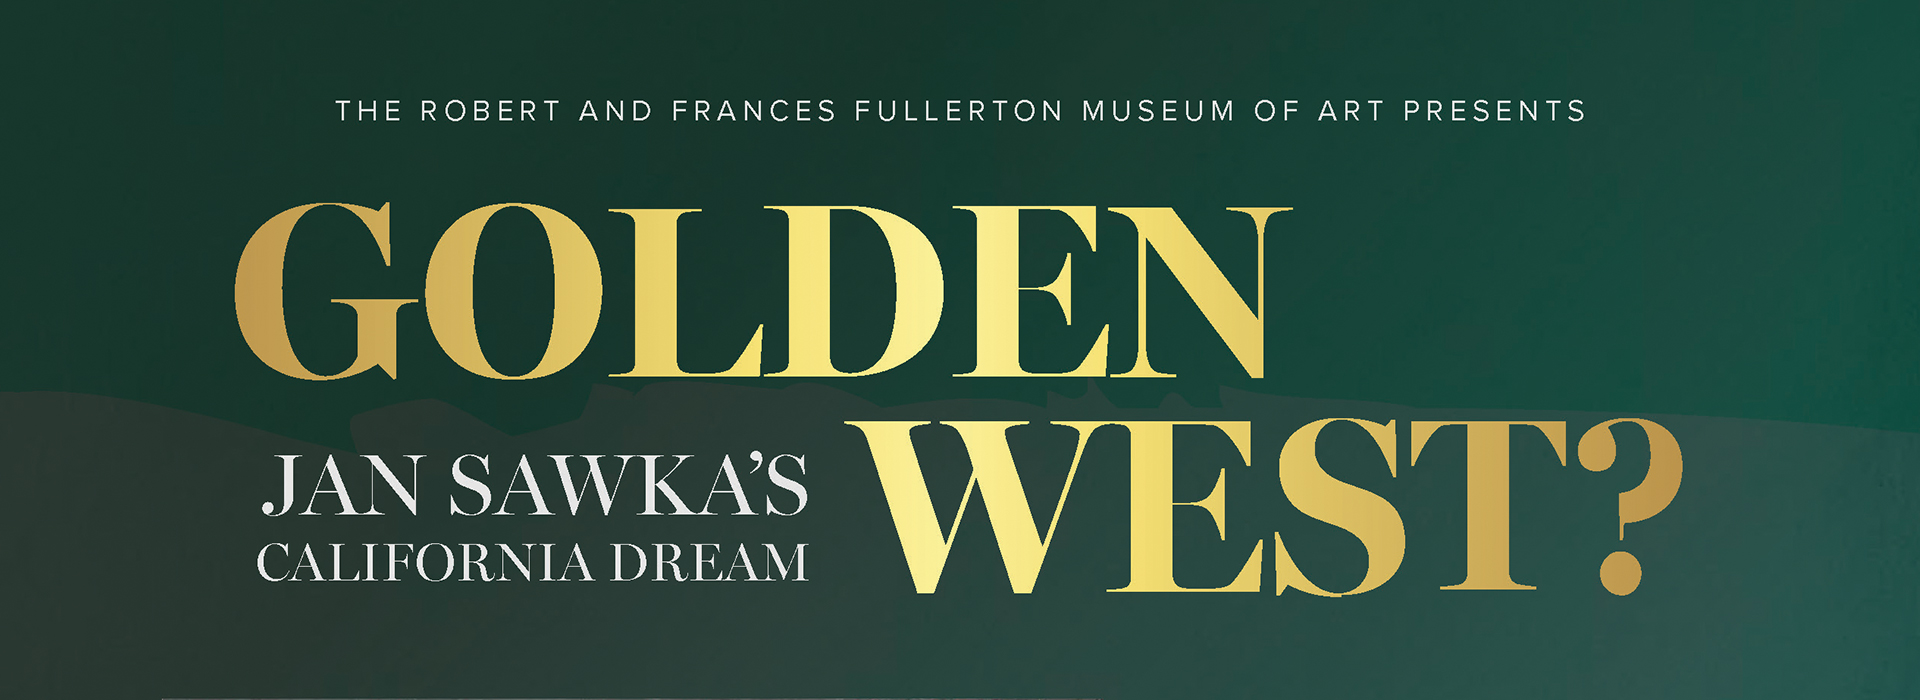 New exhibit 'Golden West?' coming to CSUSB art museum